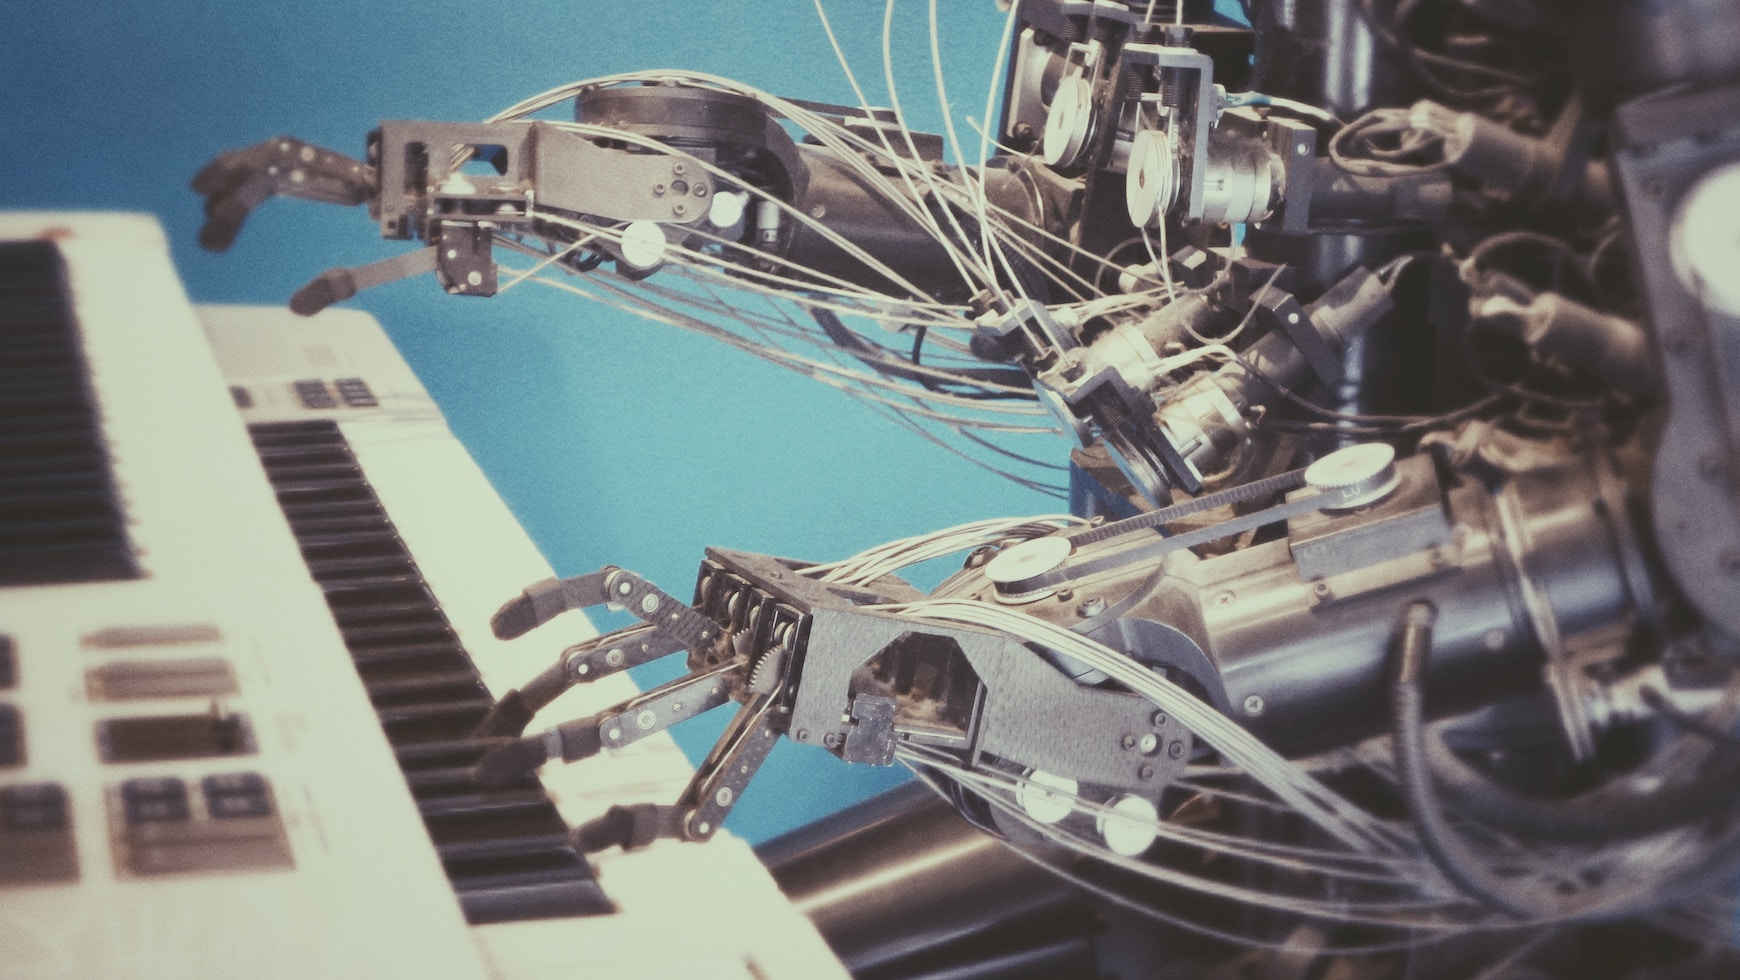 Process Mining Wont Take Jobs It Will Improve them Here Are 4 Examples Robot